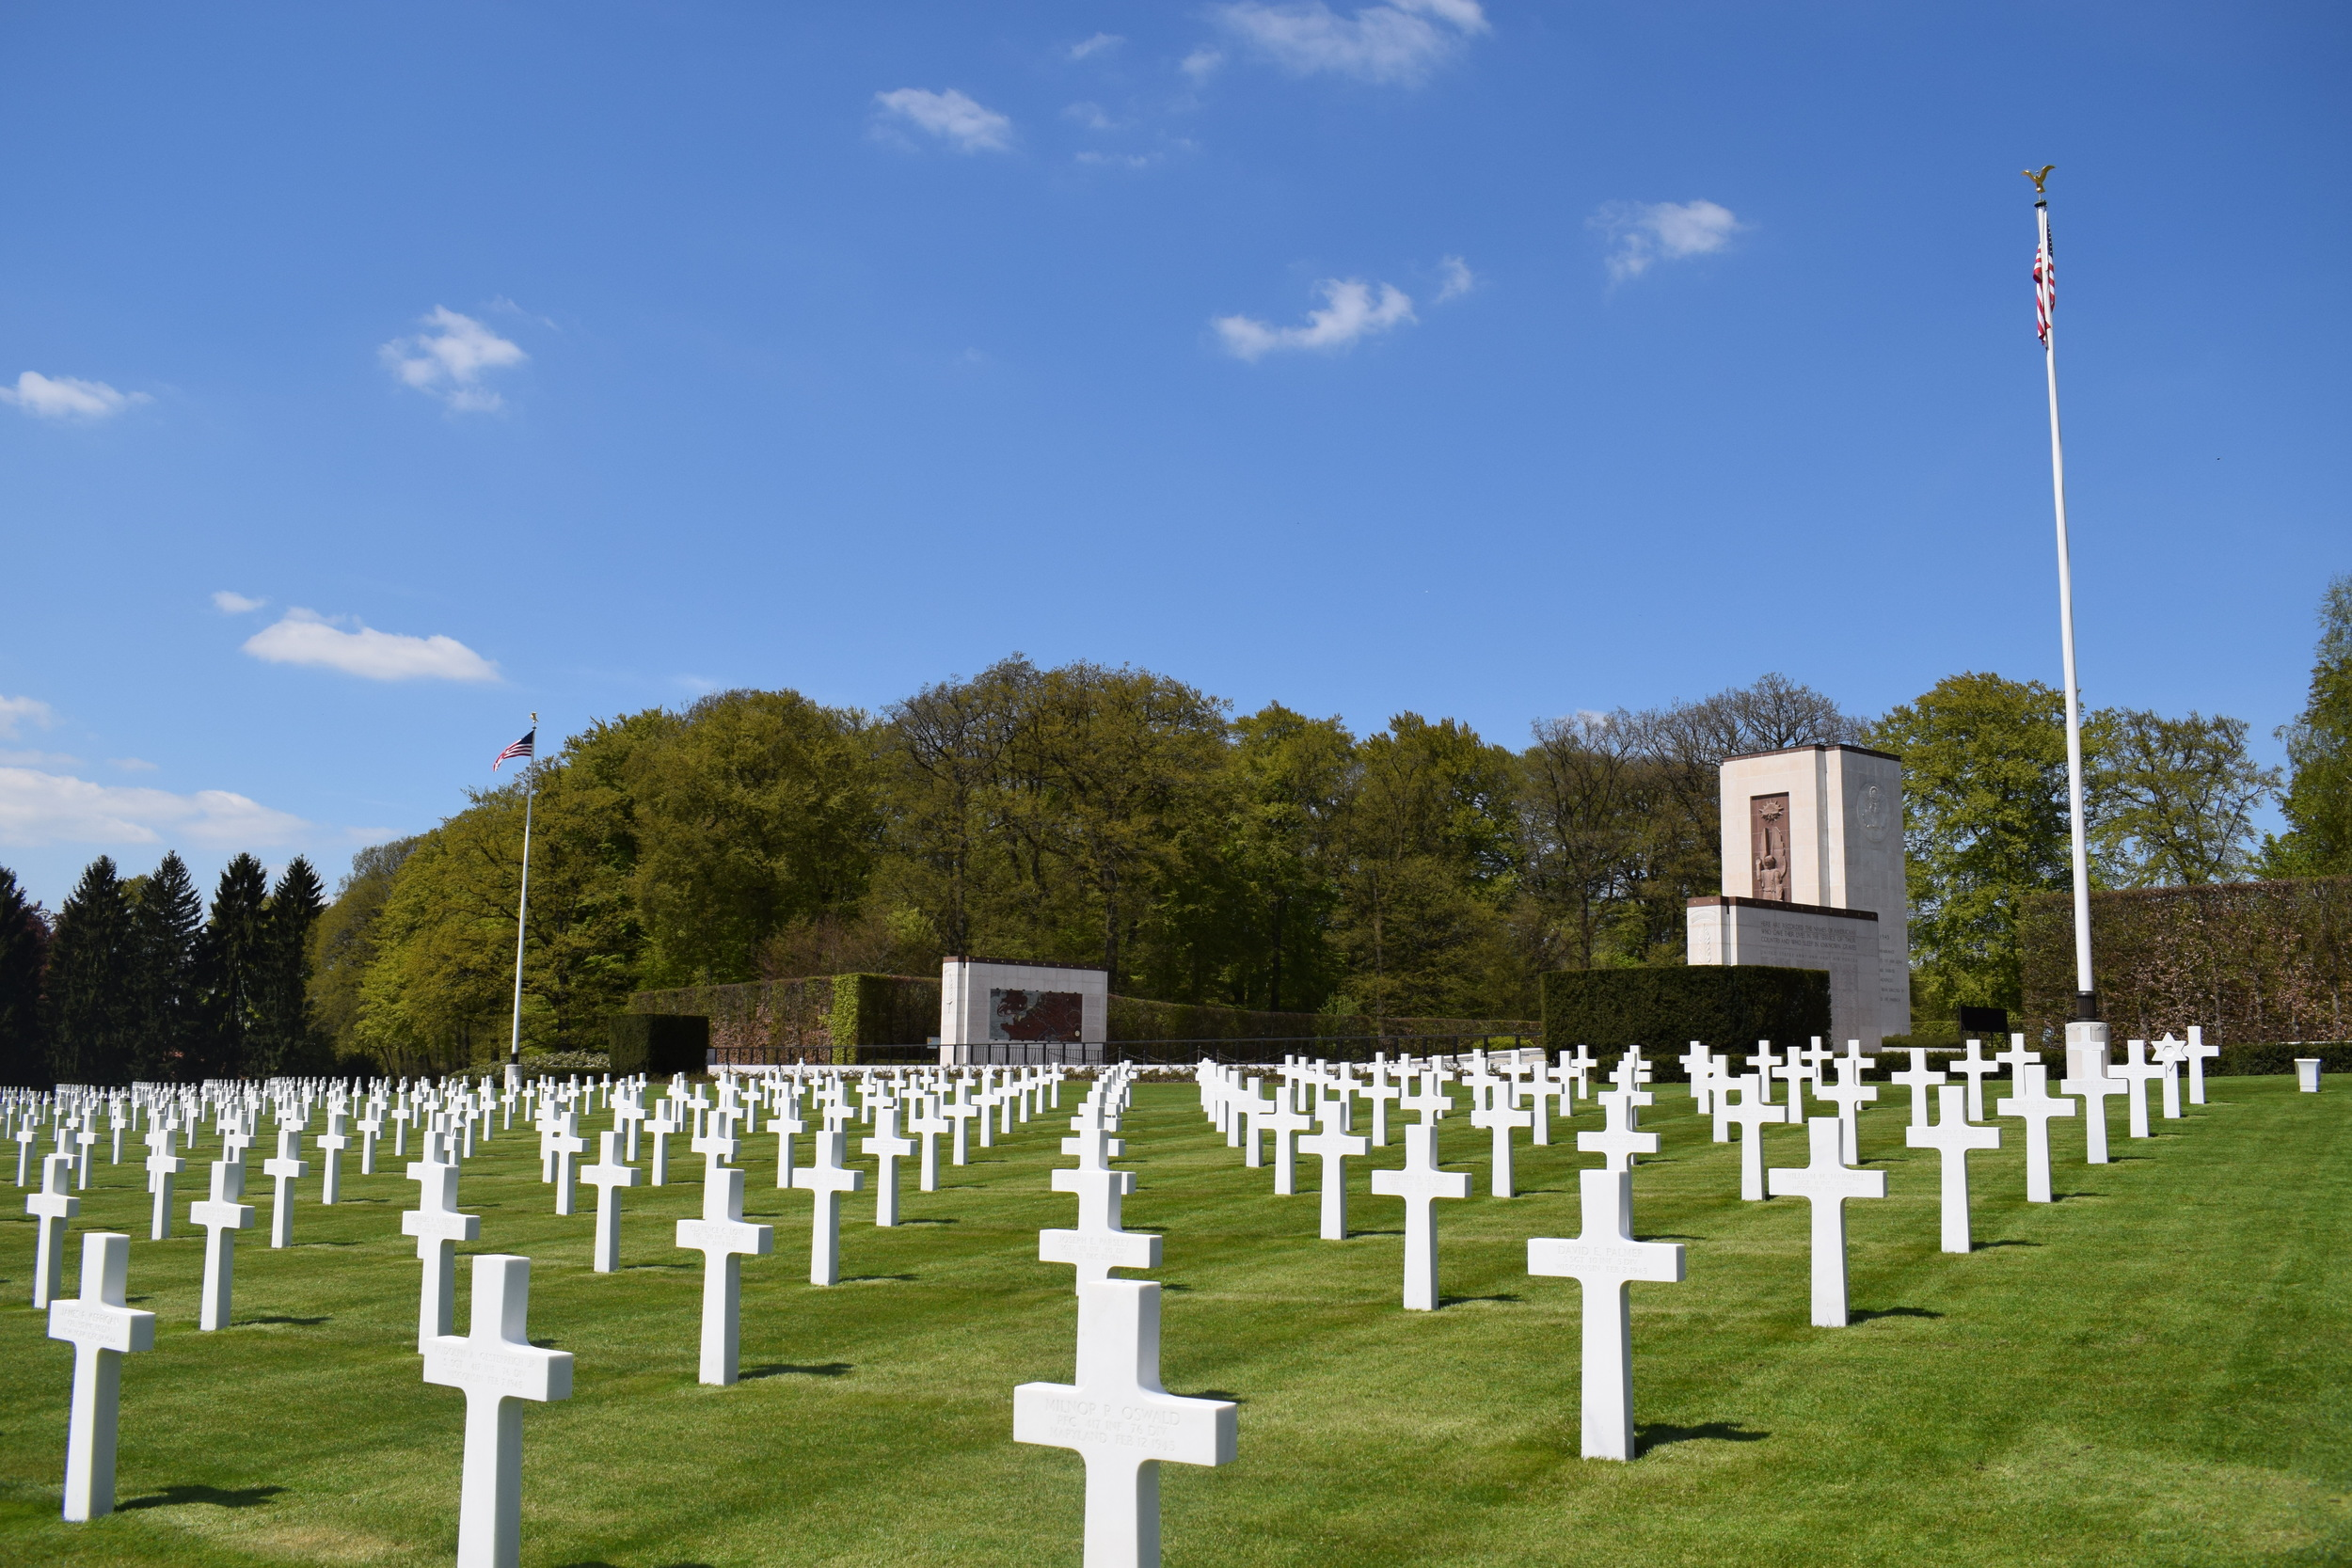 General Patton's grave lies between the two flagpoles.